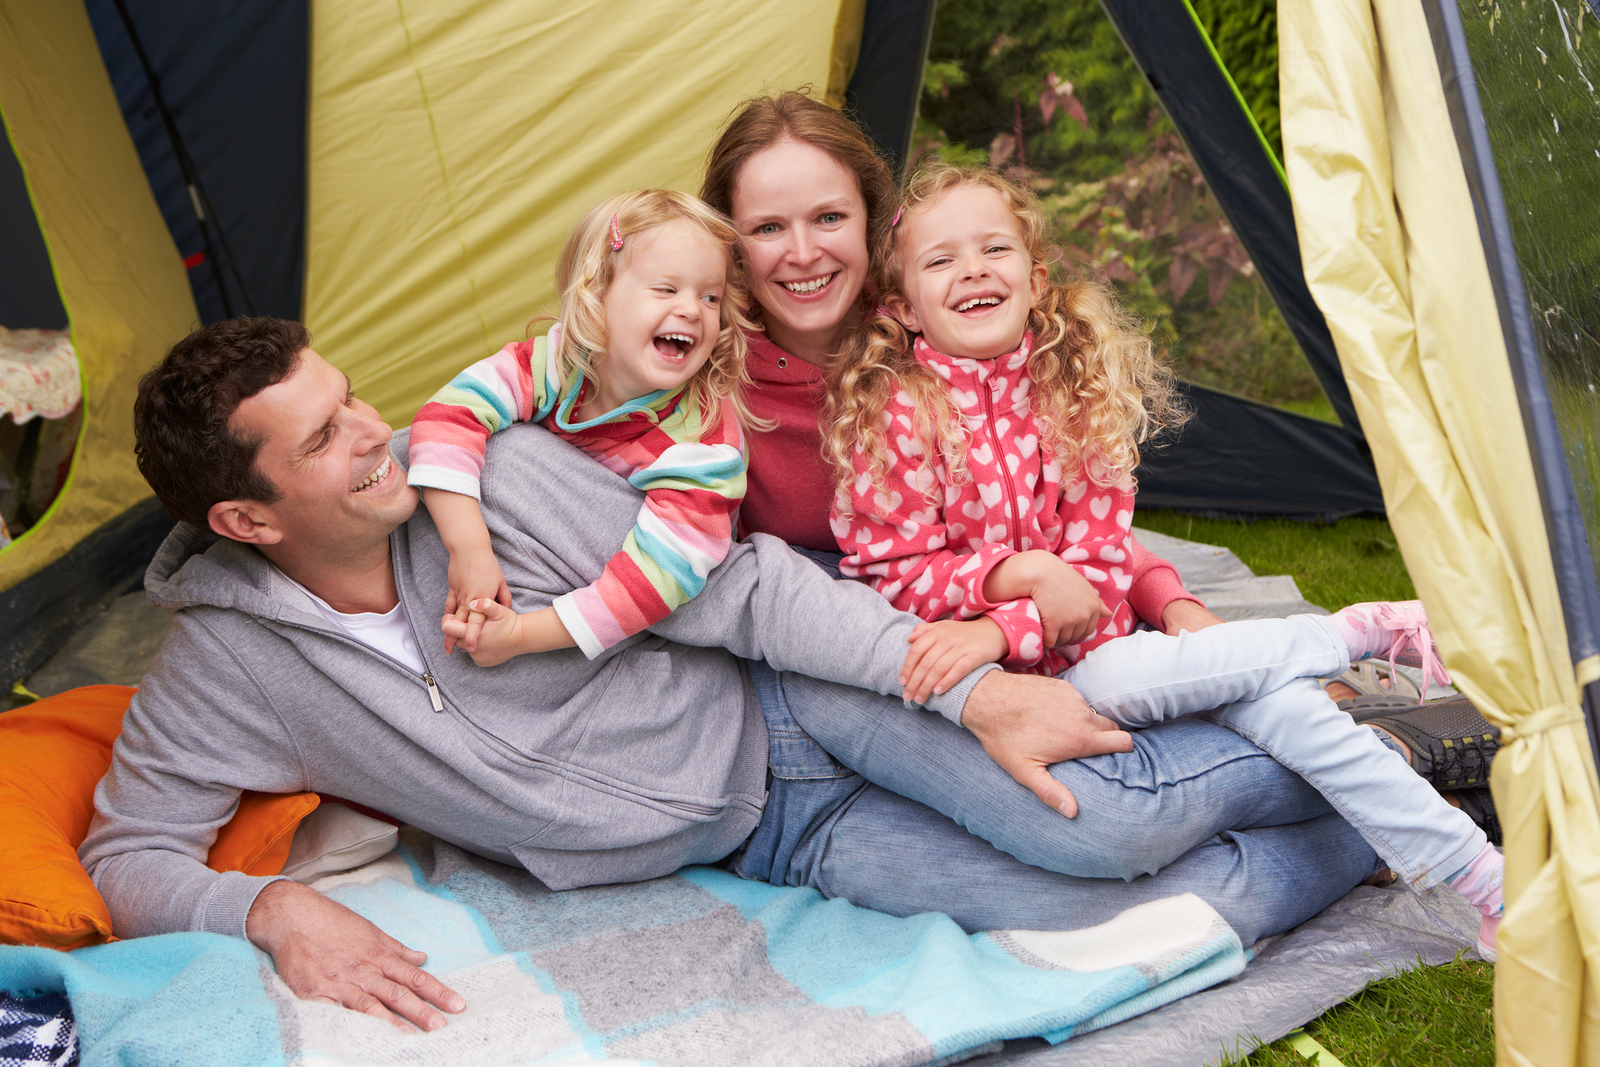 We have some tips on how to make camping a fun family activity!